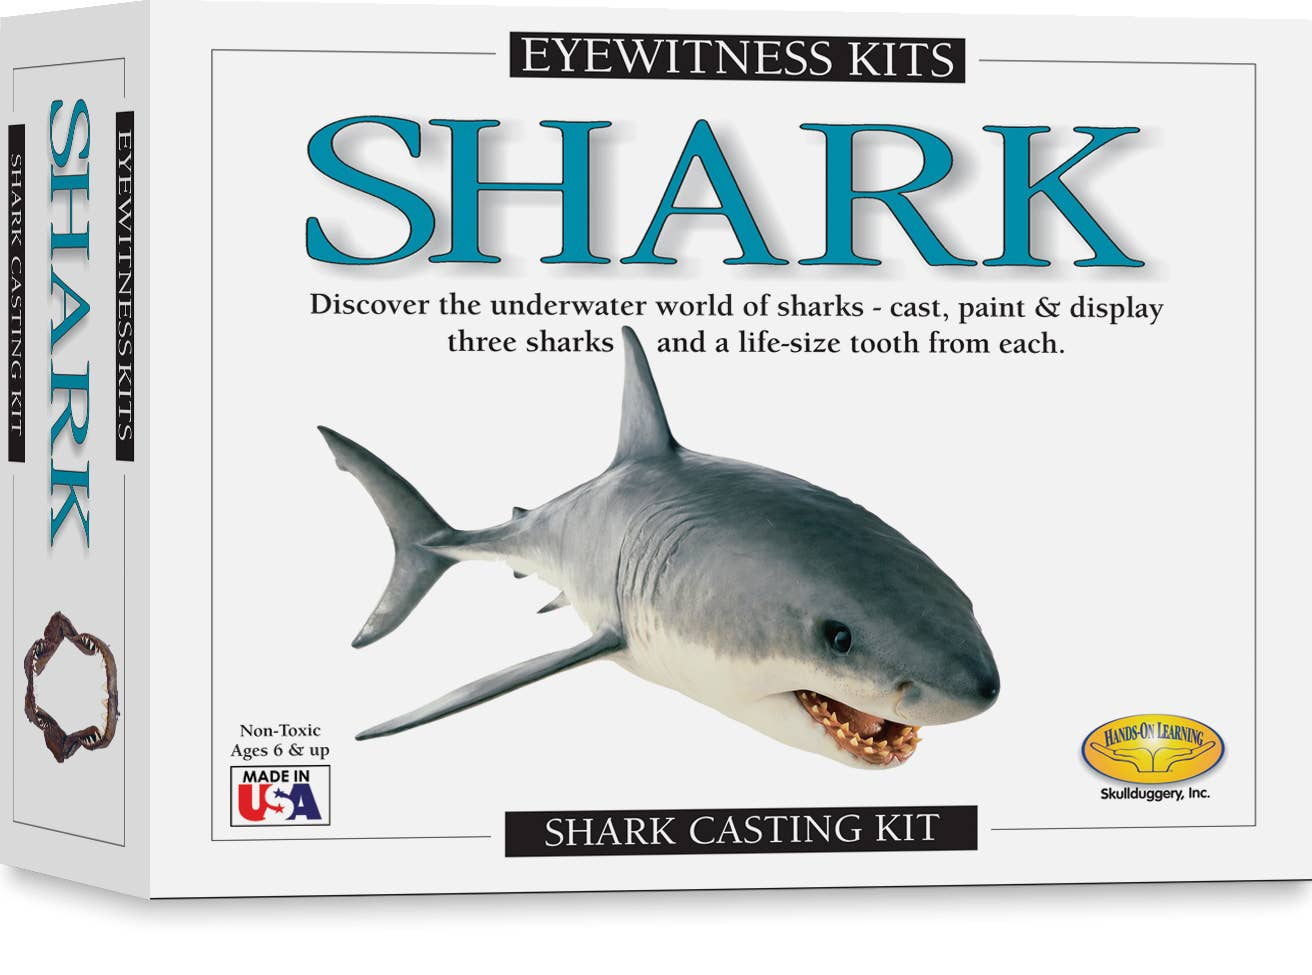 Outer box of Eyewitness Kit showing shark mold activity Learn fascinating facts about sharks make your own models verbiage